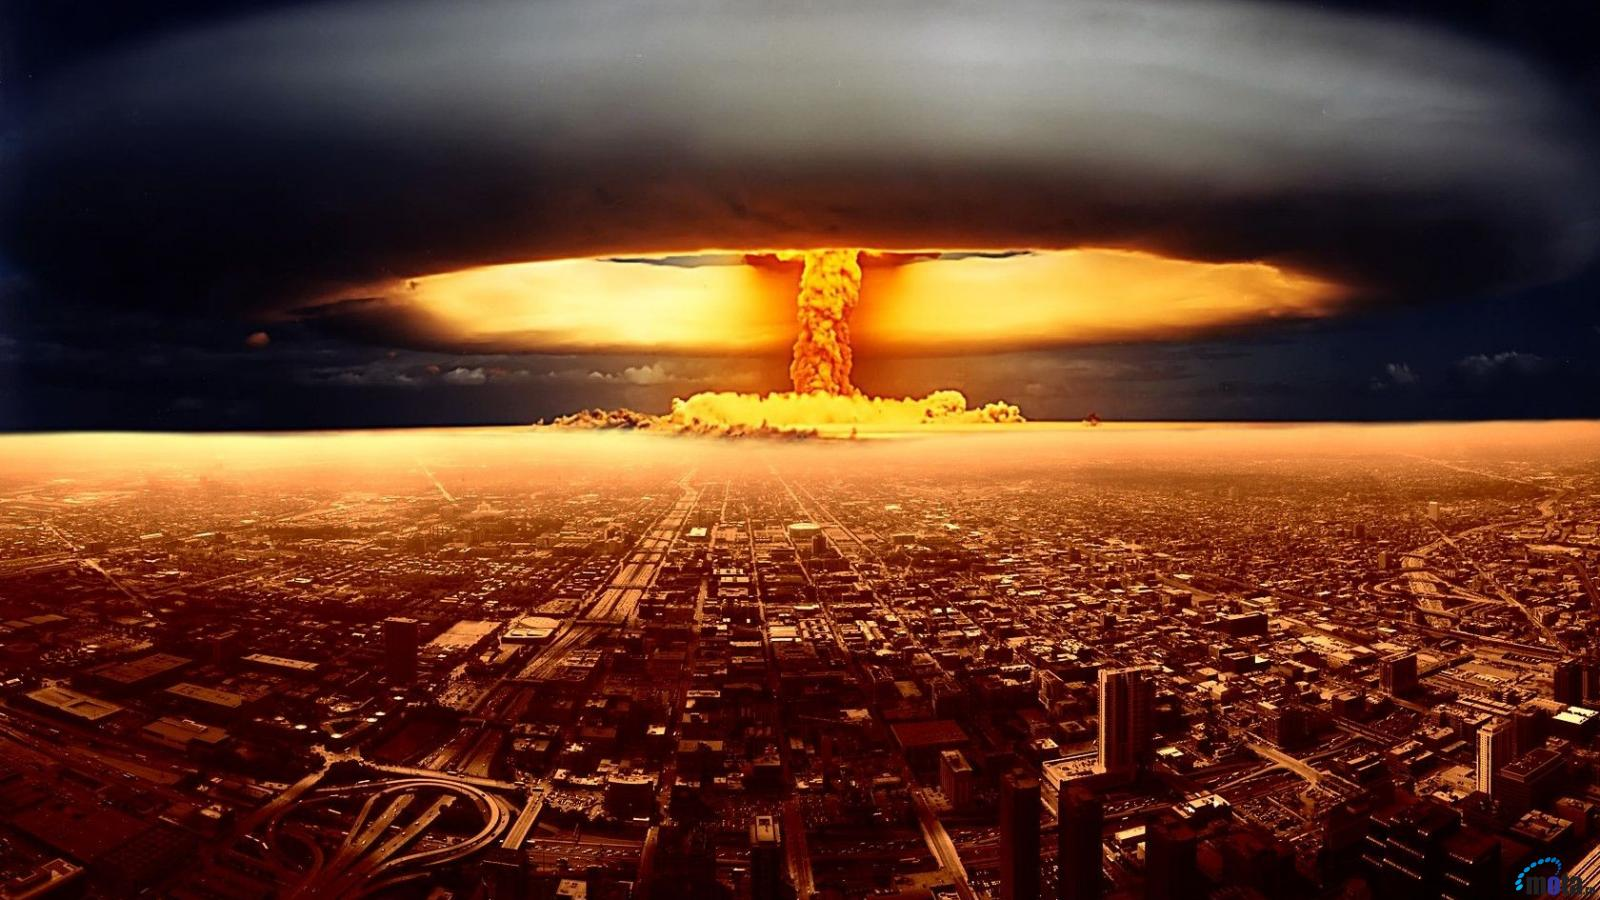 nucular war essay The nuclear war in india and pakistan is a serious crisis and can lead to many problems all over the world nuclear weapons are very dangerous.